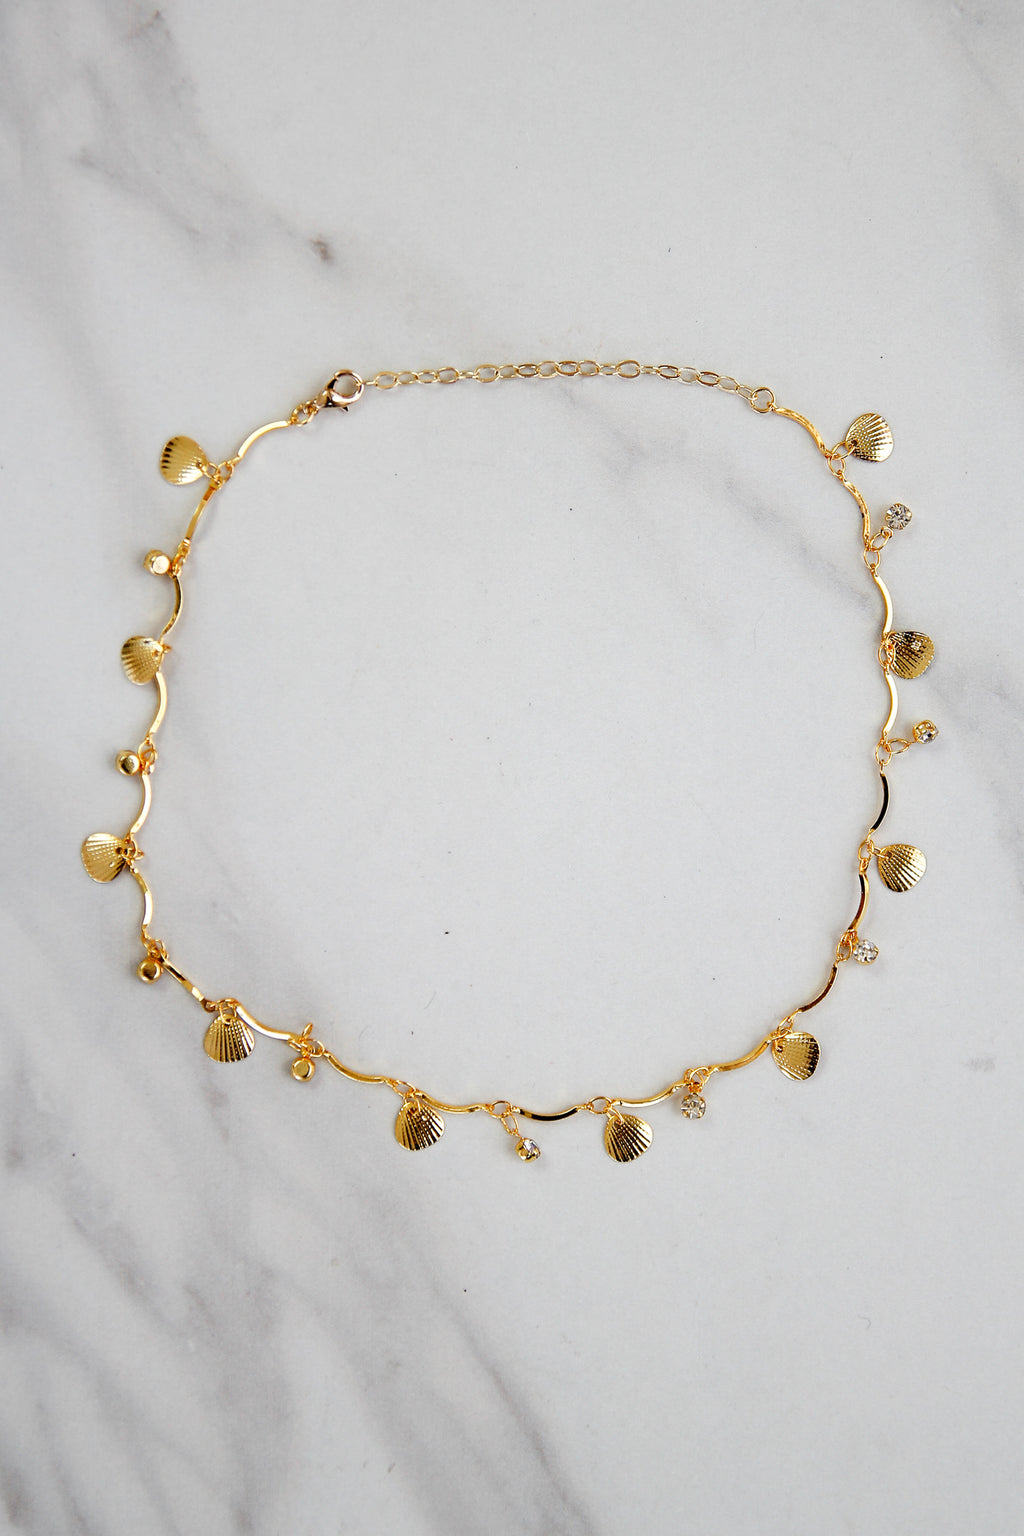 Sally Shell Choker - Gold